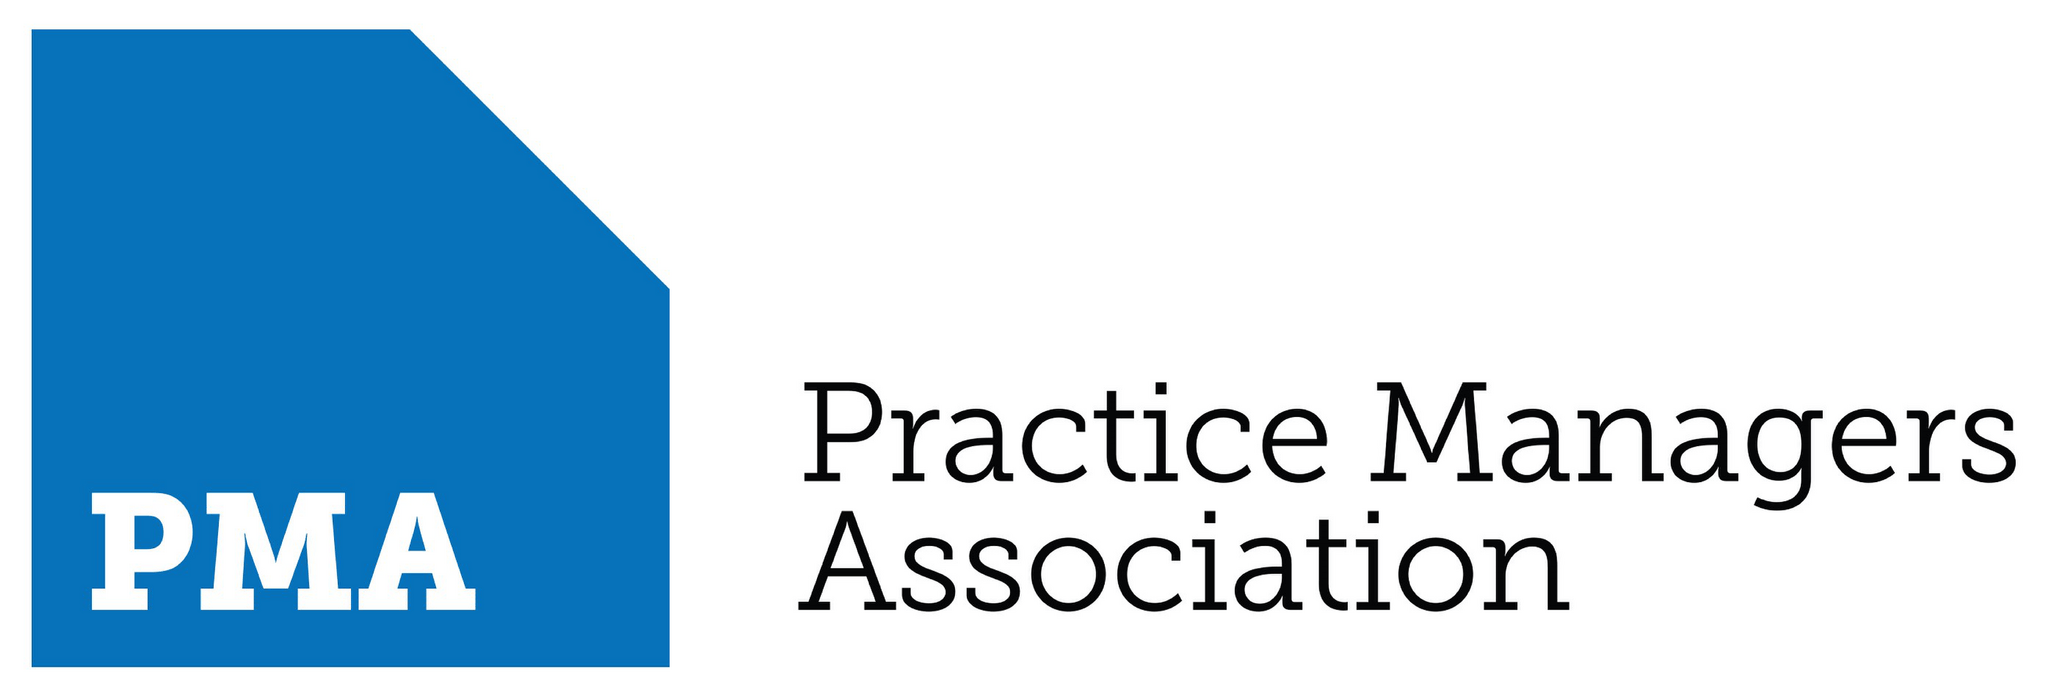 Practice Managers Association